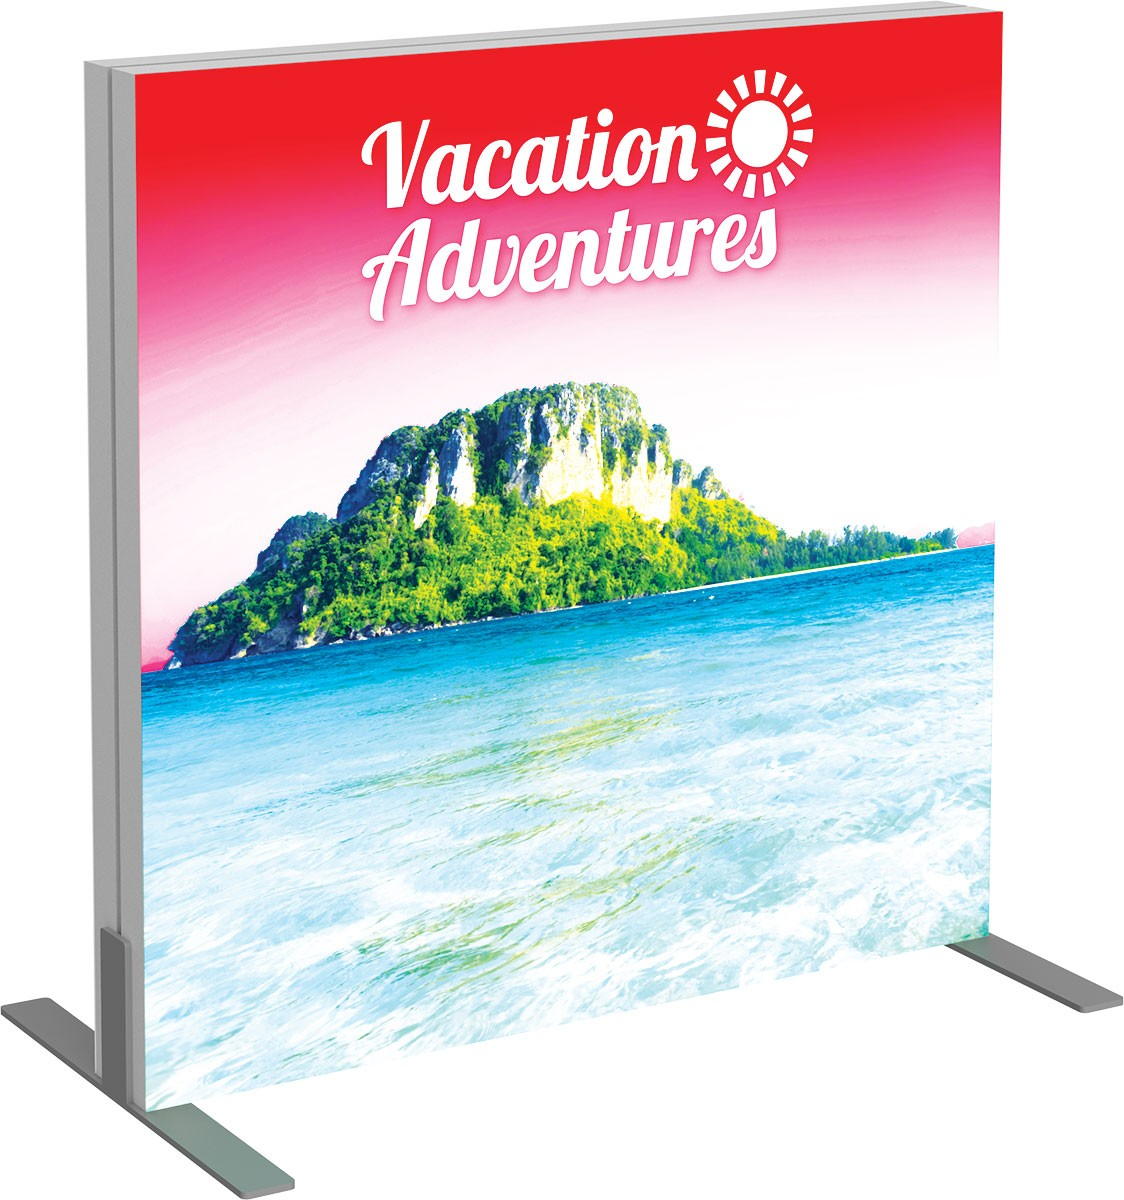 Vector Frame Backlit Display 3x3 Illuminated Tension Fabric Display